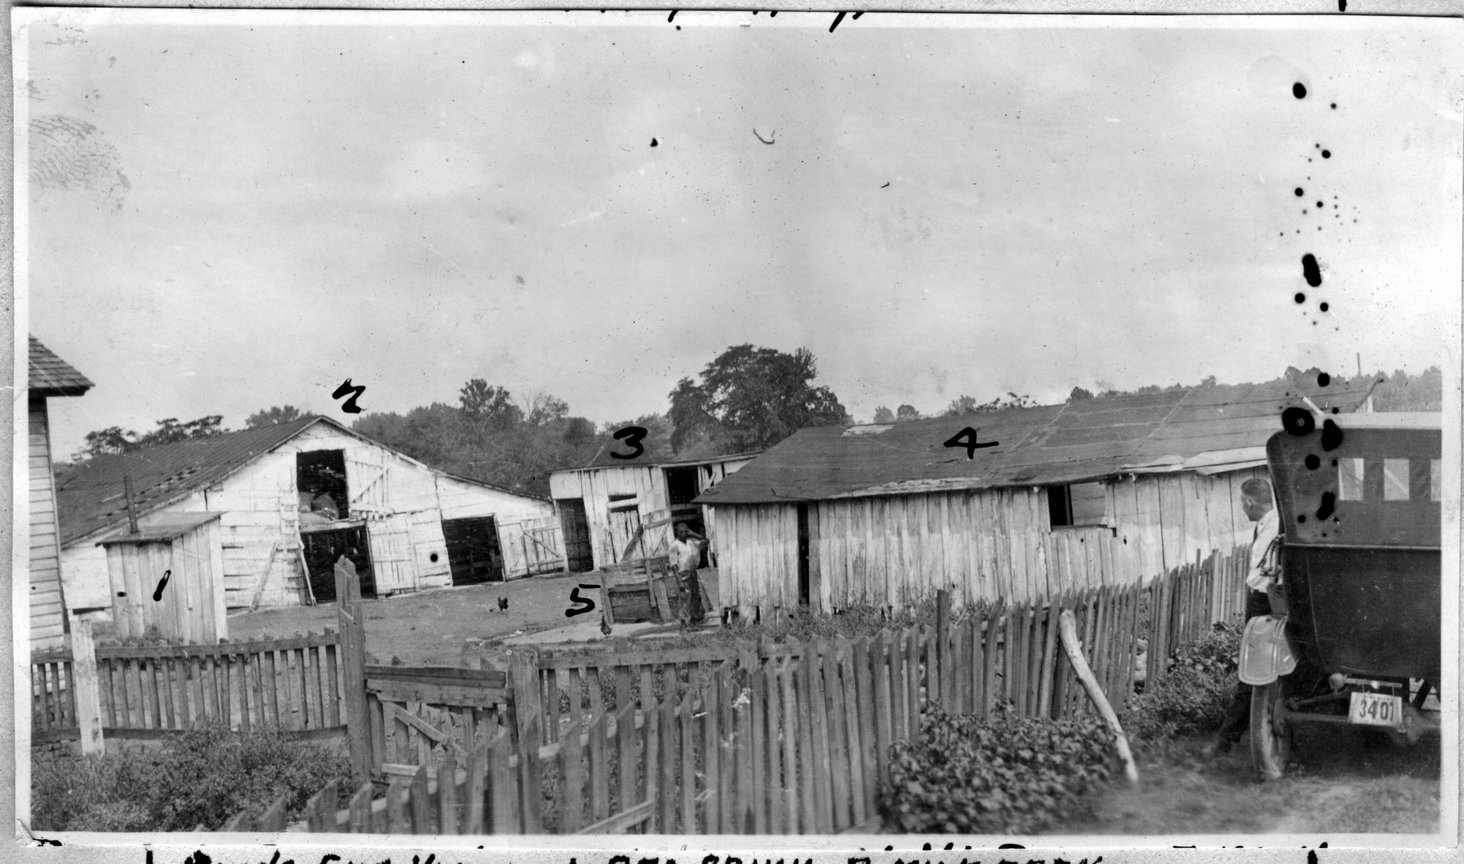 014~W. L. Pinkston Farm Aug 1920.jpg